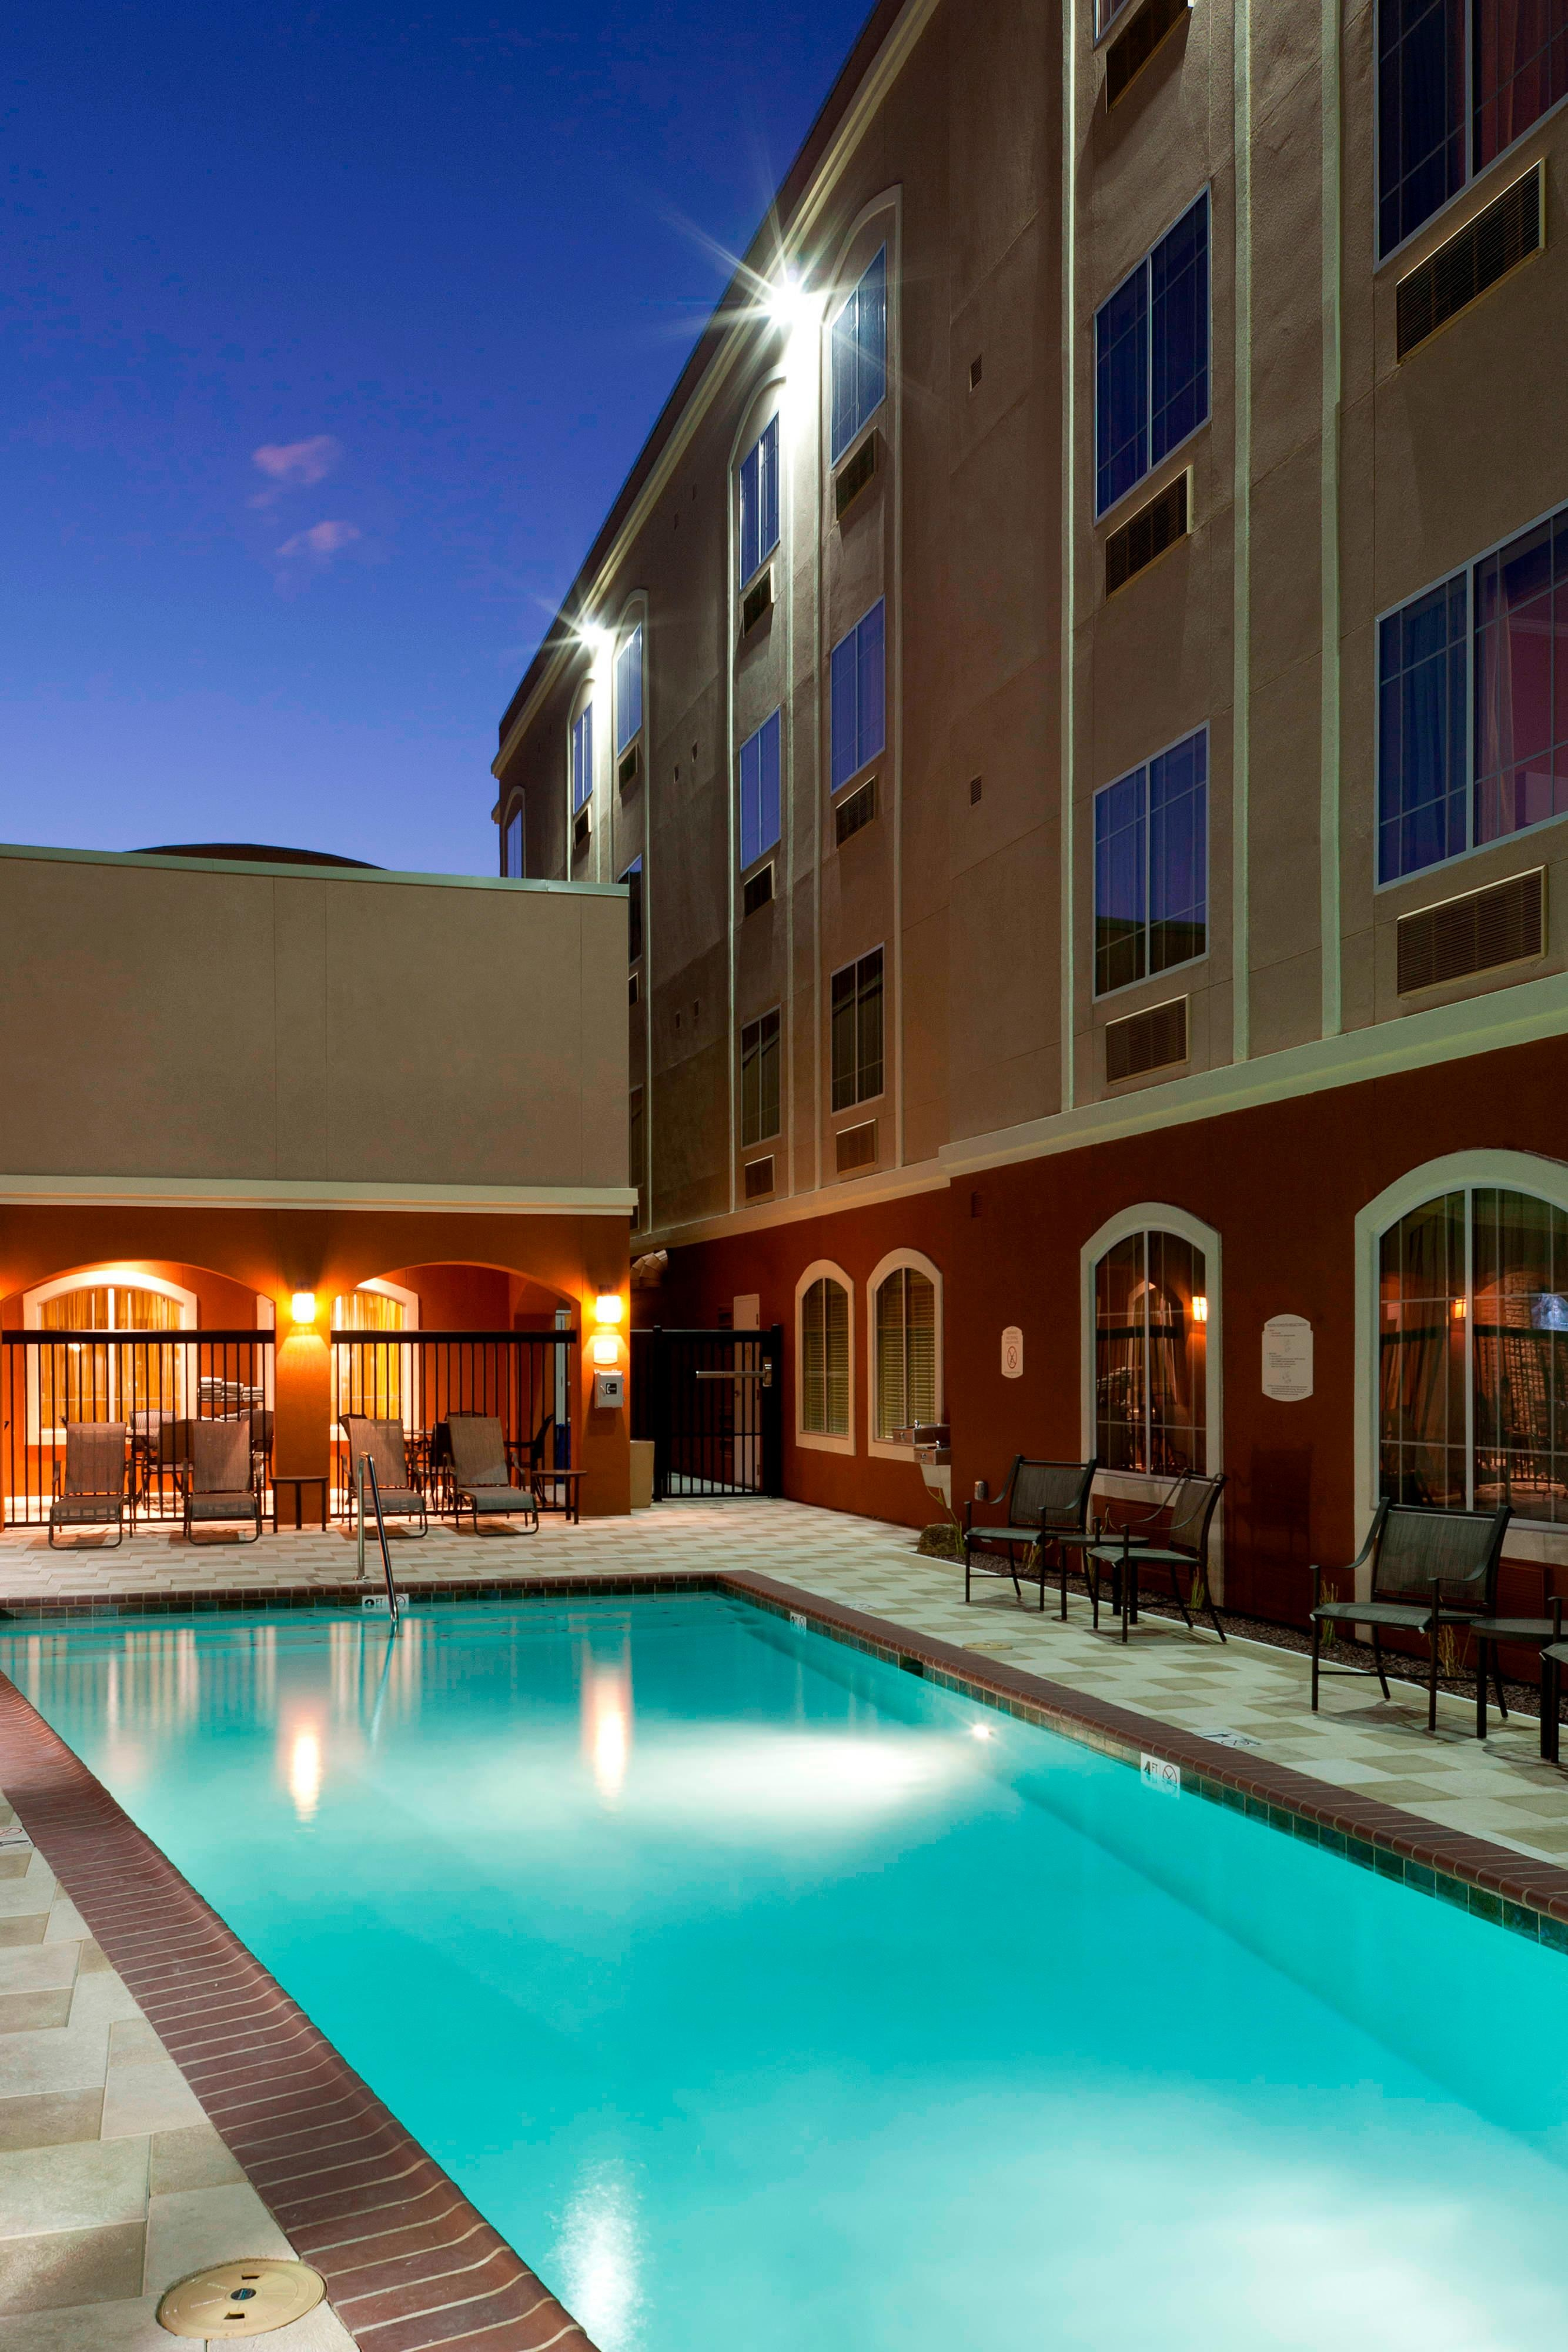 Outdoor Pool - Tucson AZ hotels